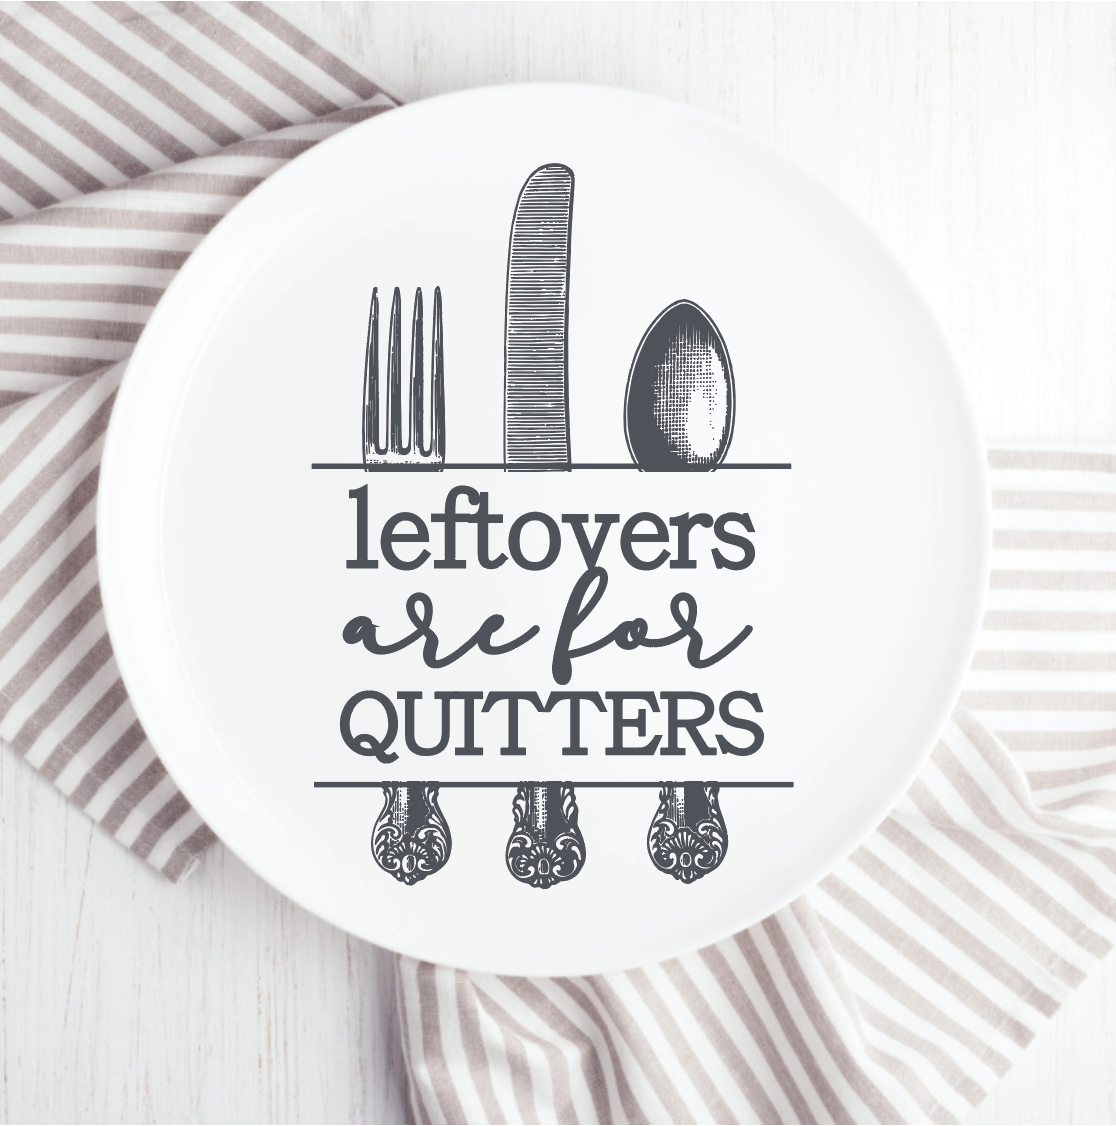 Leftovers are for Quitters 8.5x11